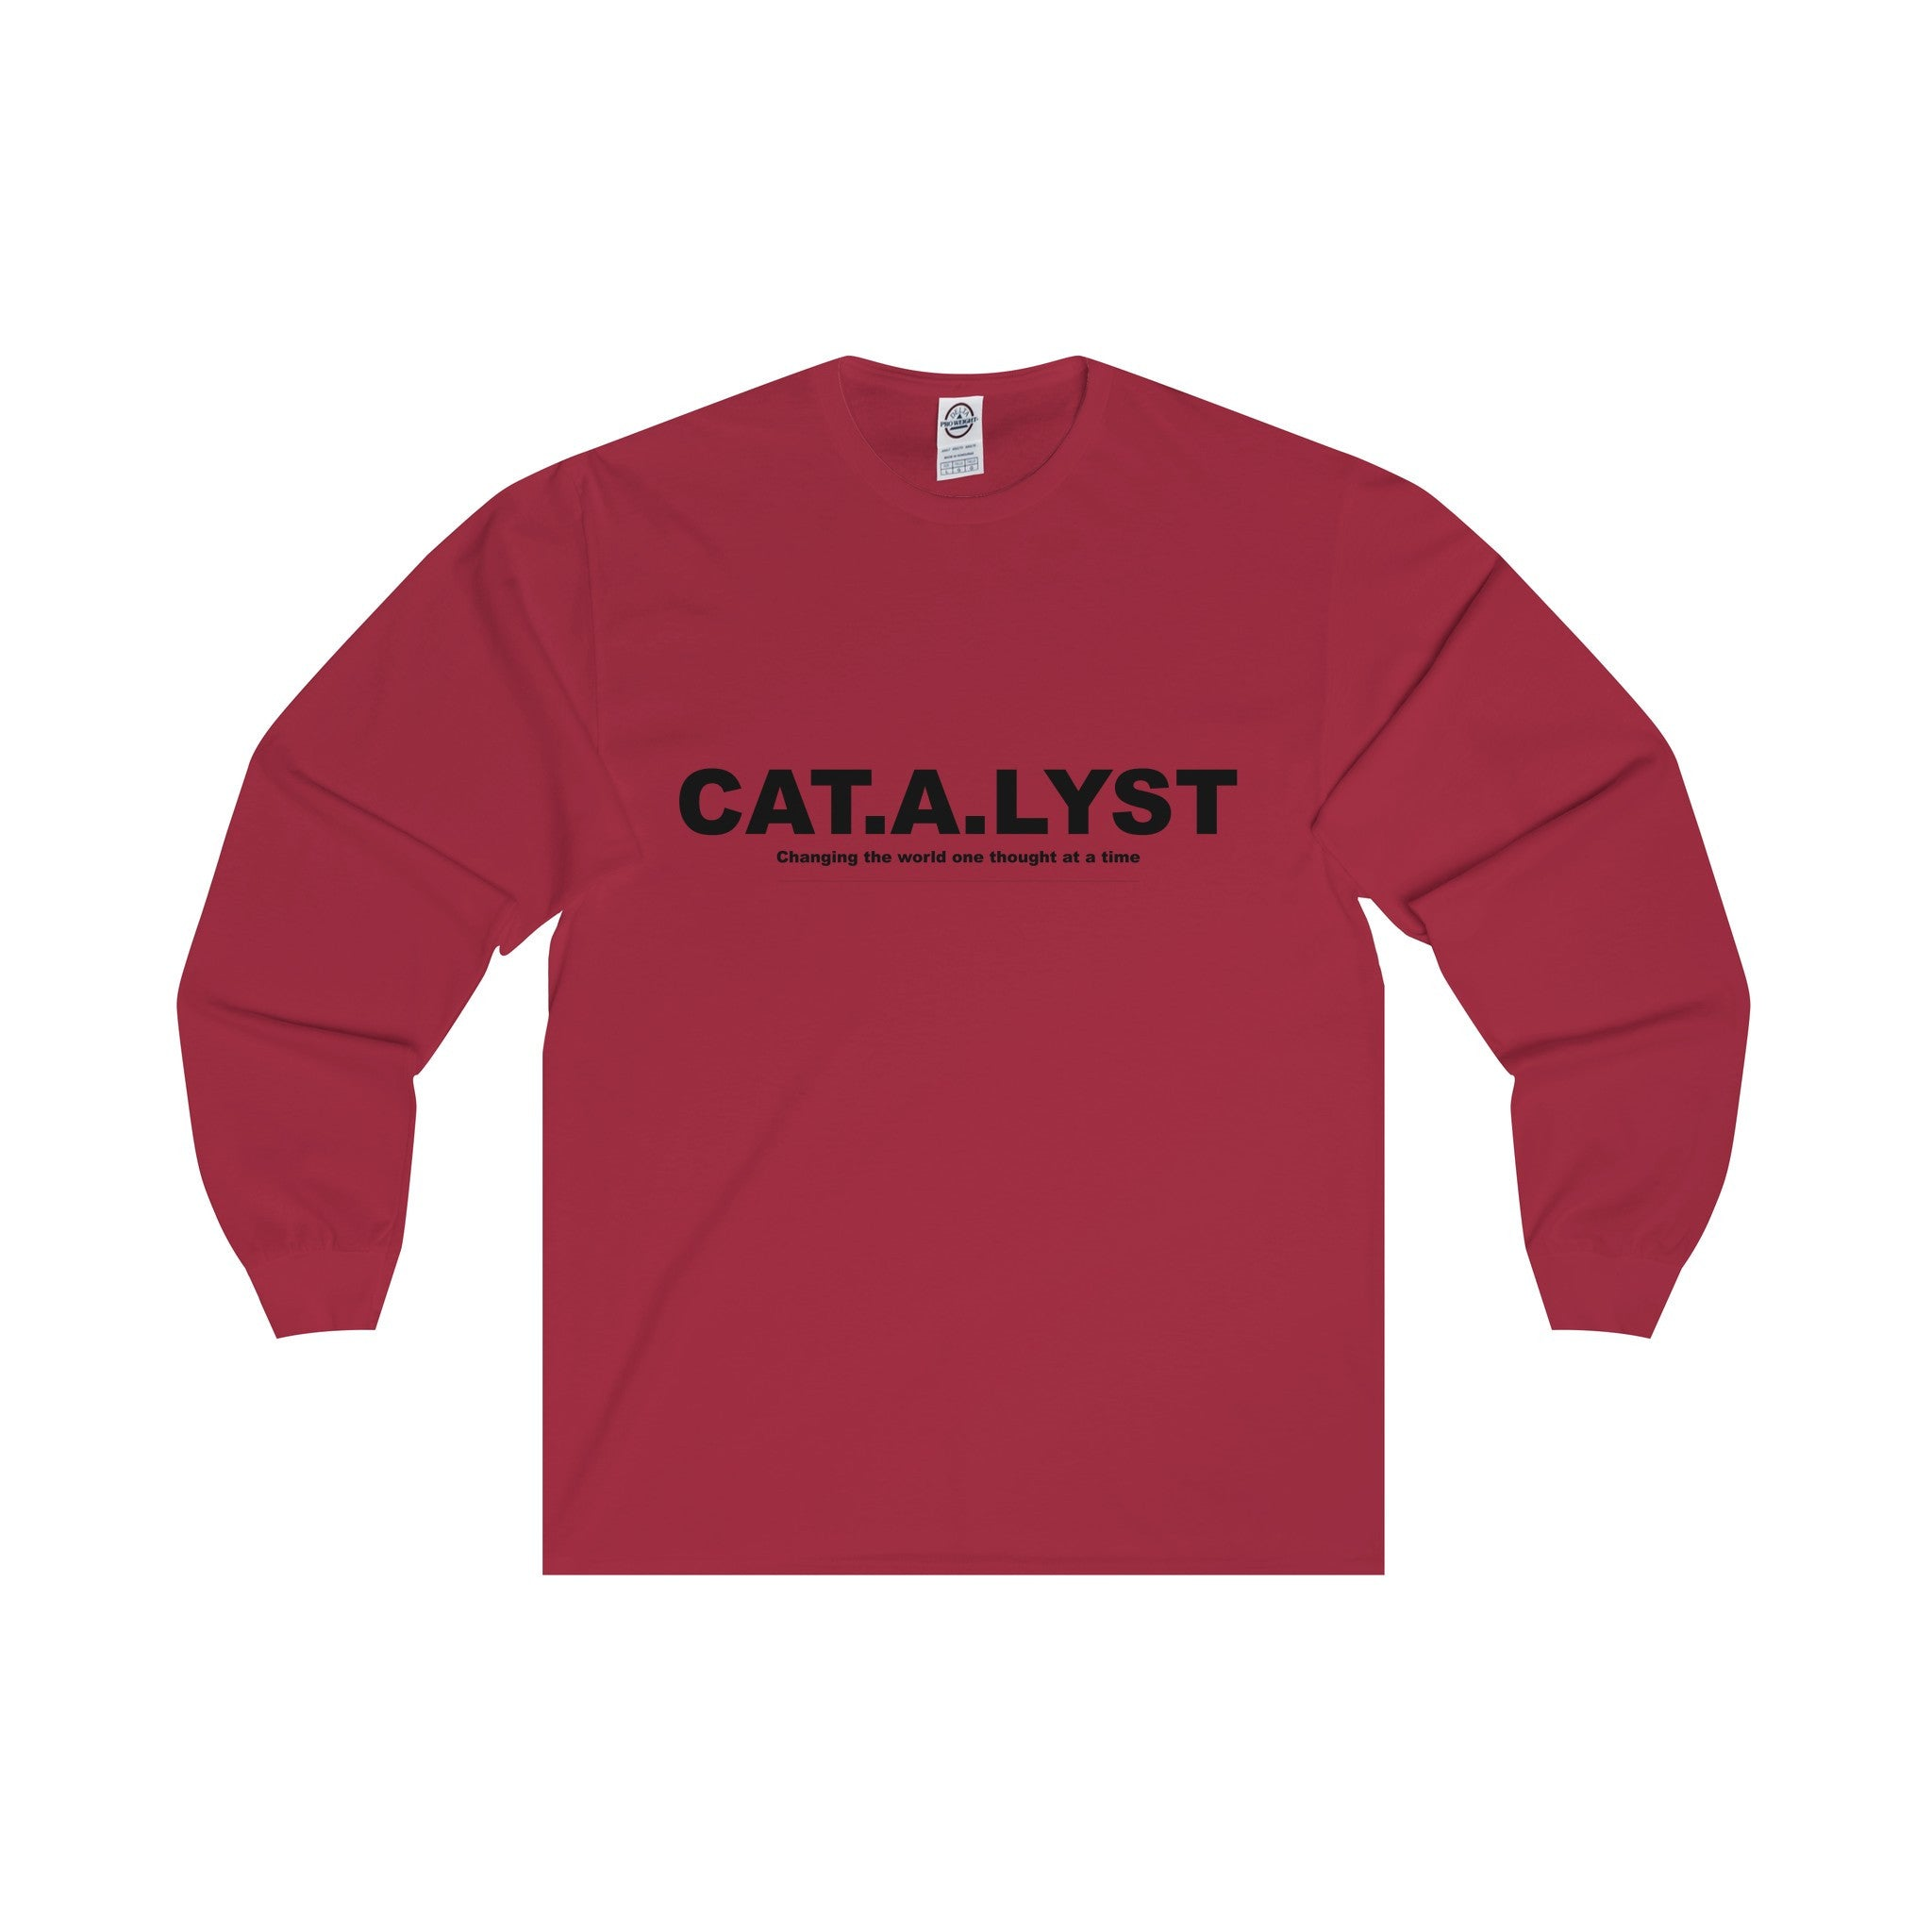 CATALYST Black Letter Long Sleeve Tee (5 colors available)